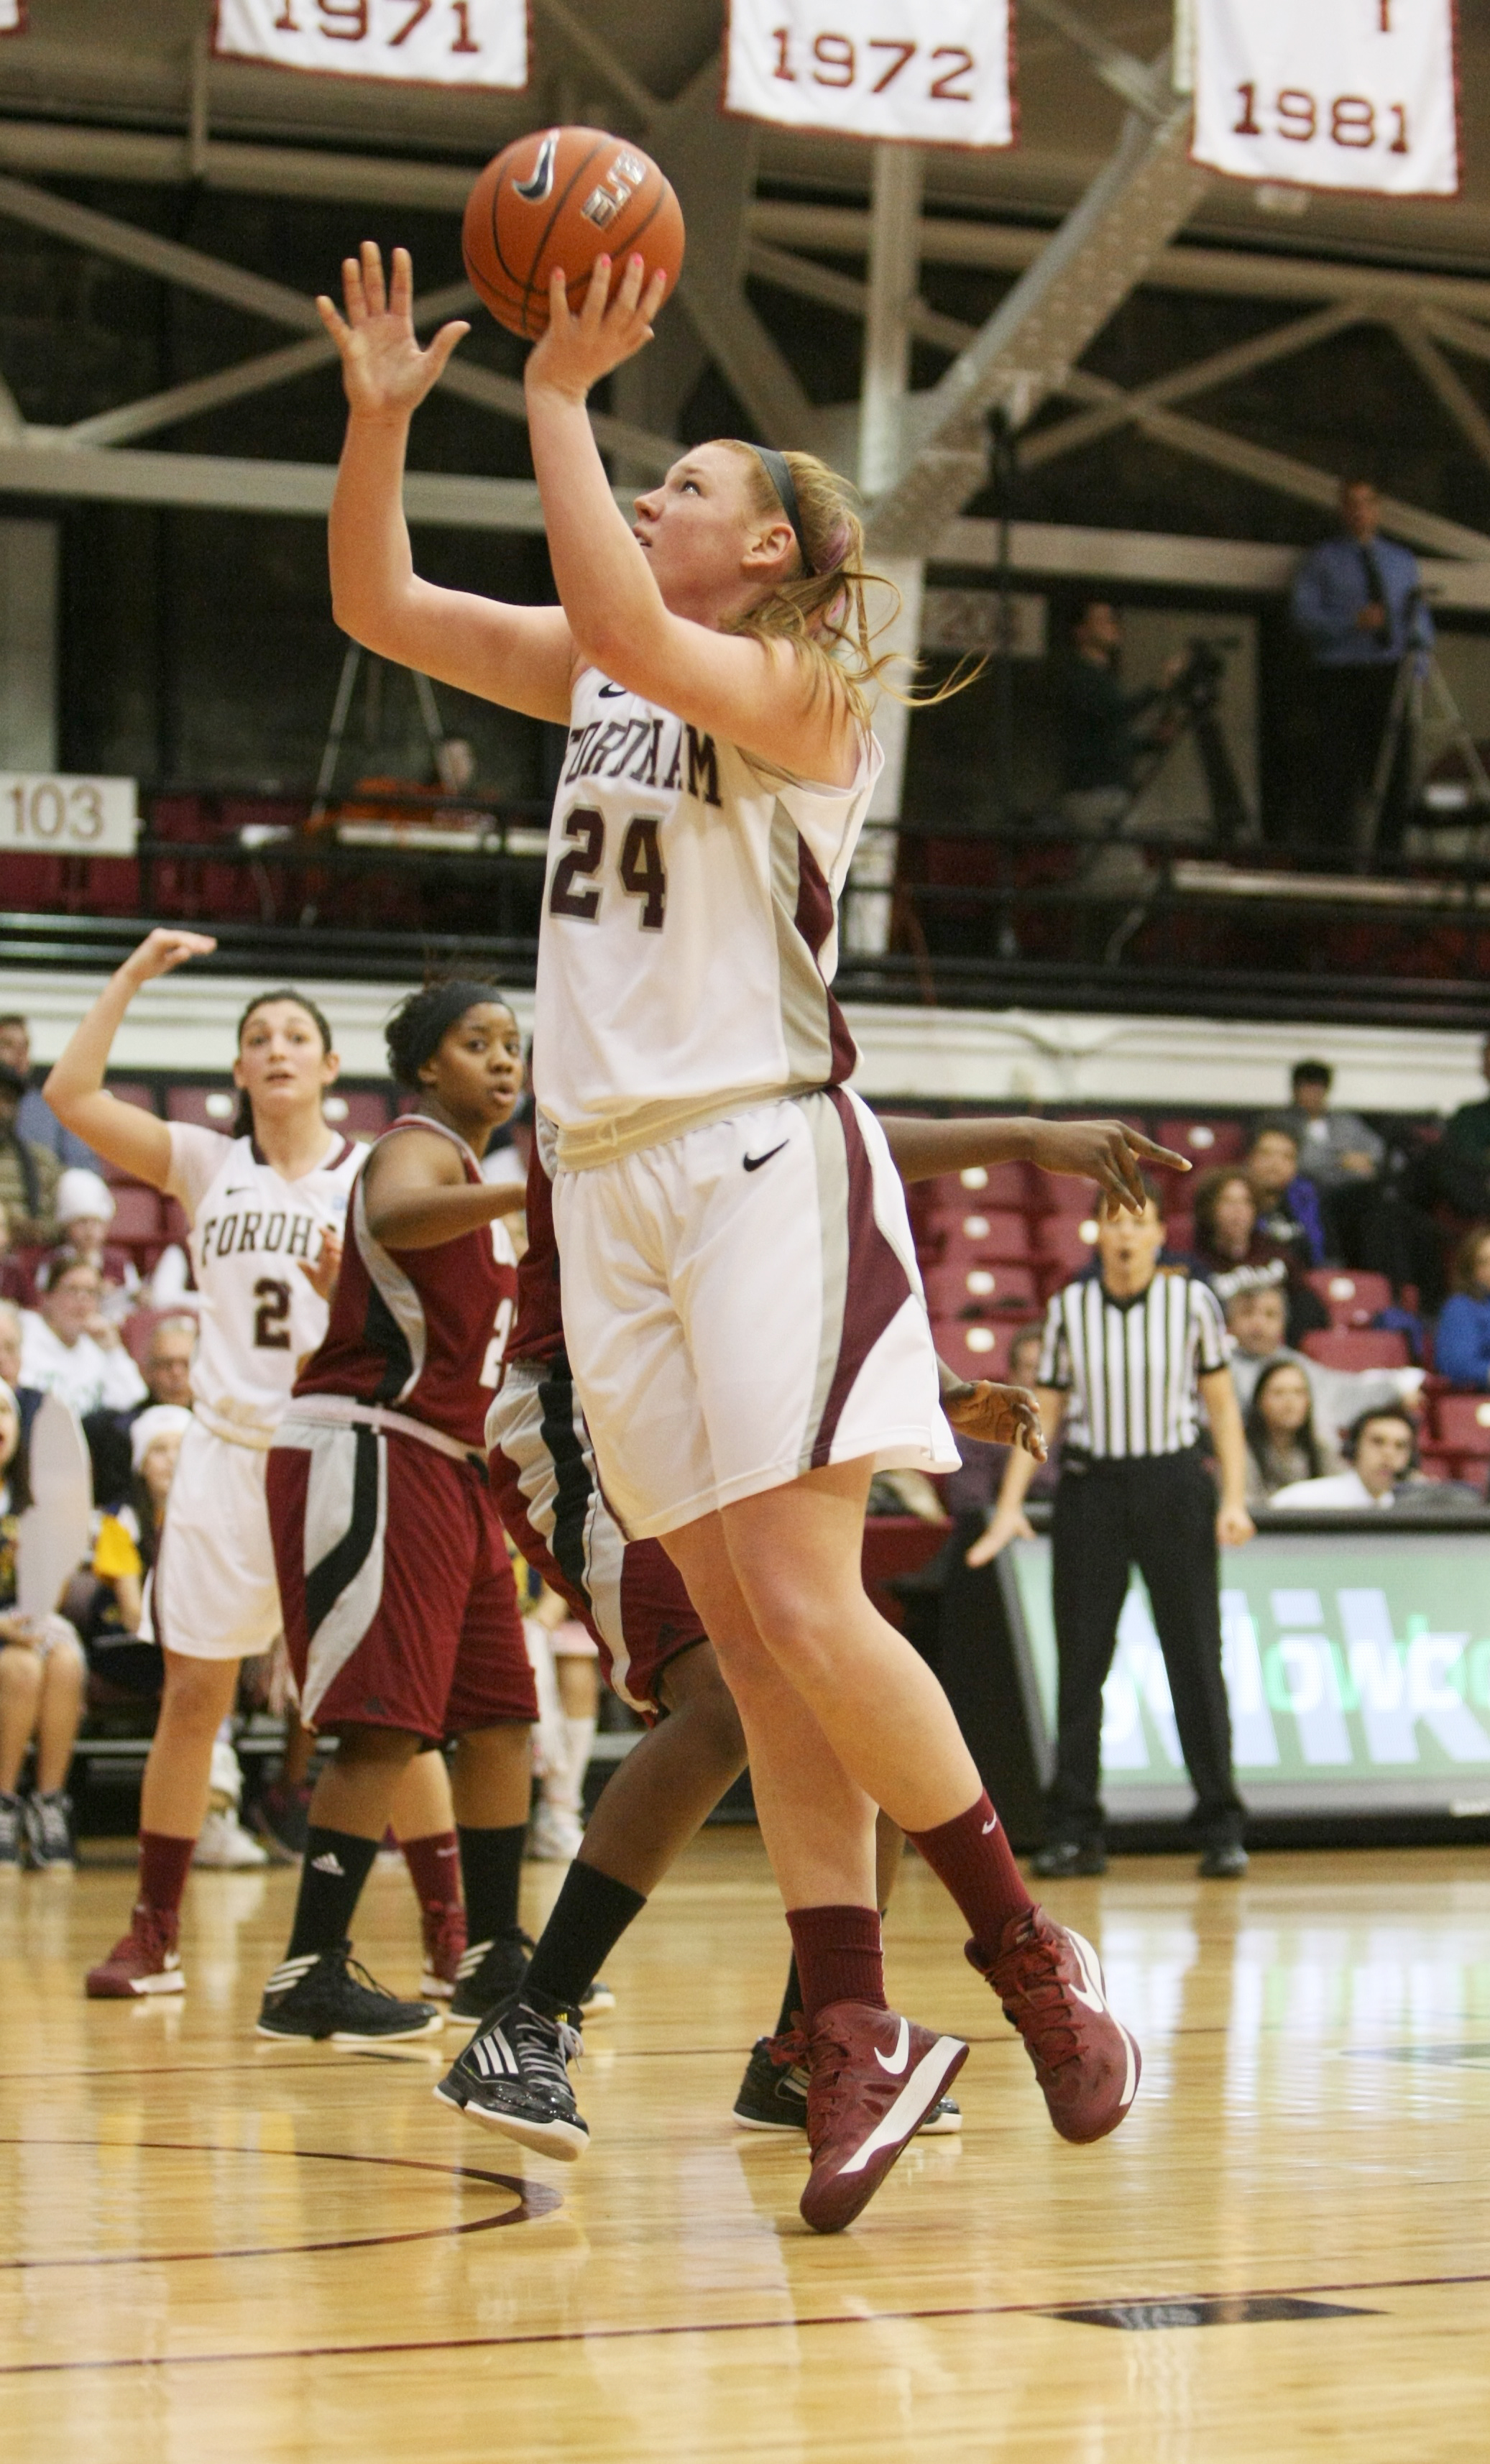 Ally White/The Ram Samantha Clark had 19 points and 11 rebounds in Fordham's loss to Duquesne.